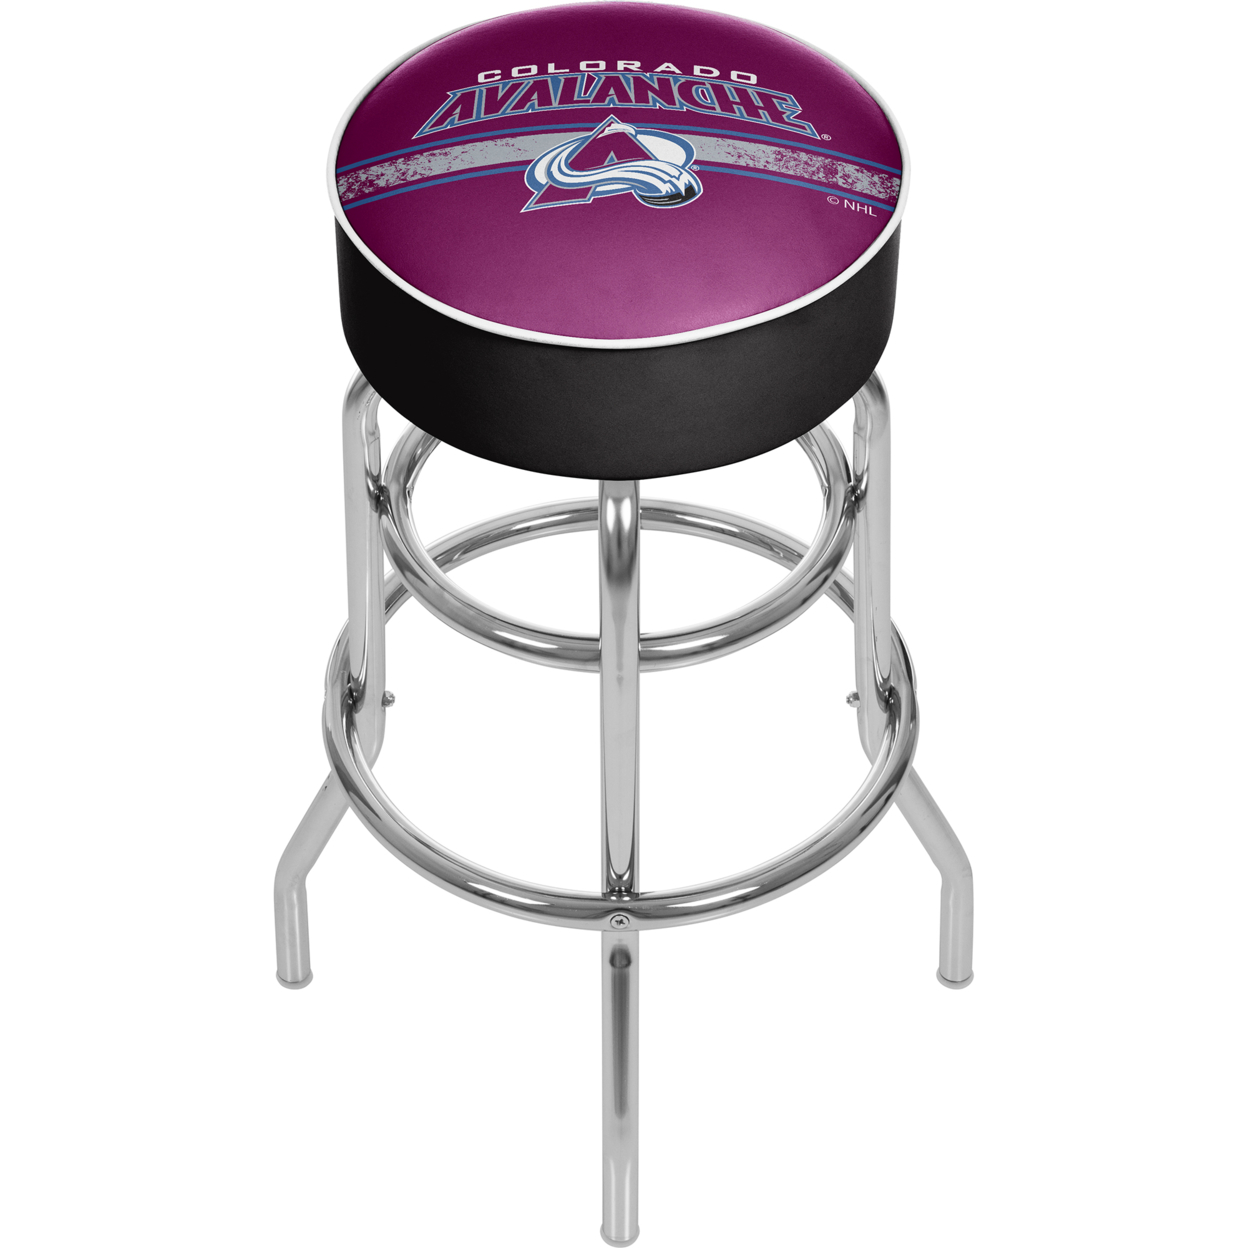 NHL Chrome Bar Stool with Swivel - Colorado Avalanche